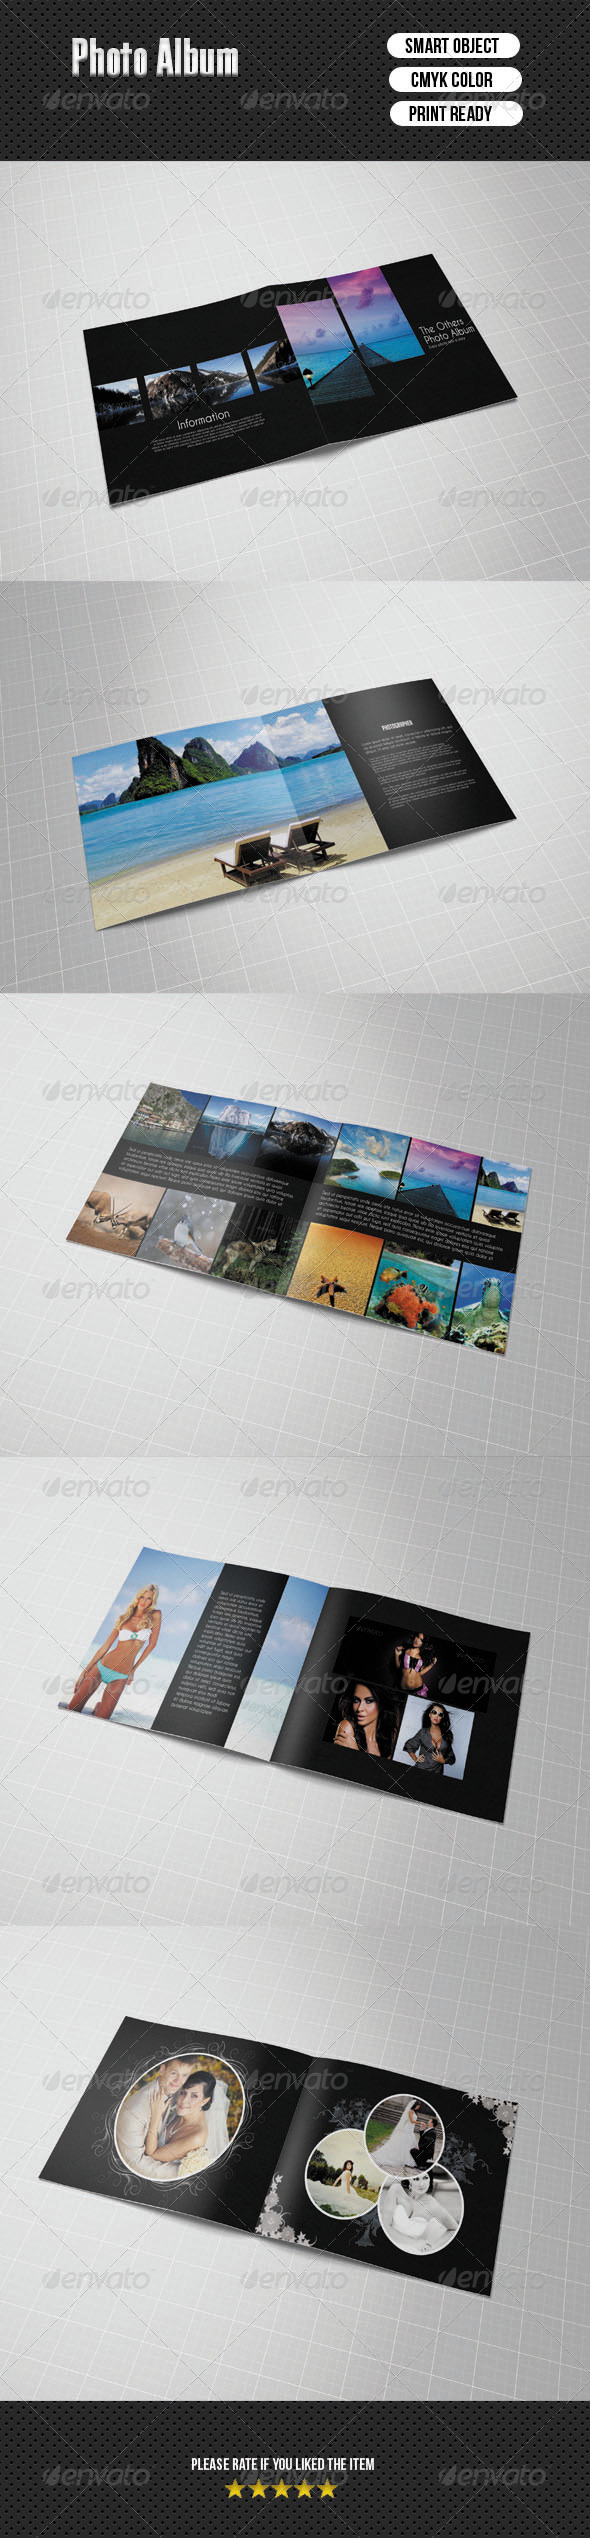 Photo Album - Photo Albums Print Templates